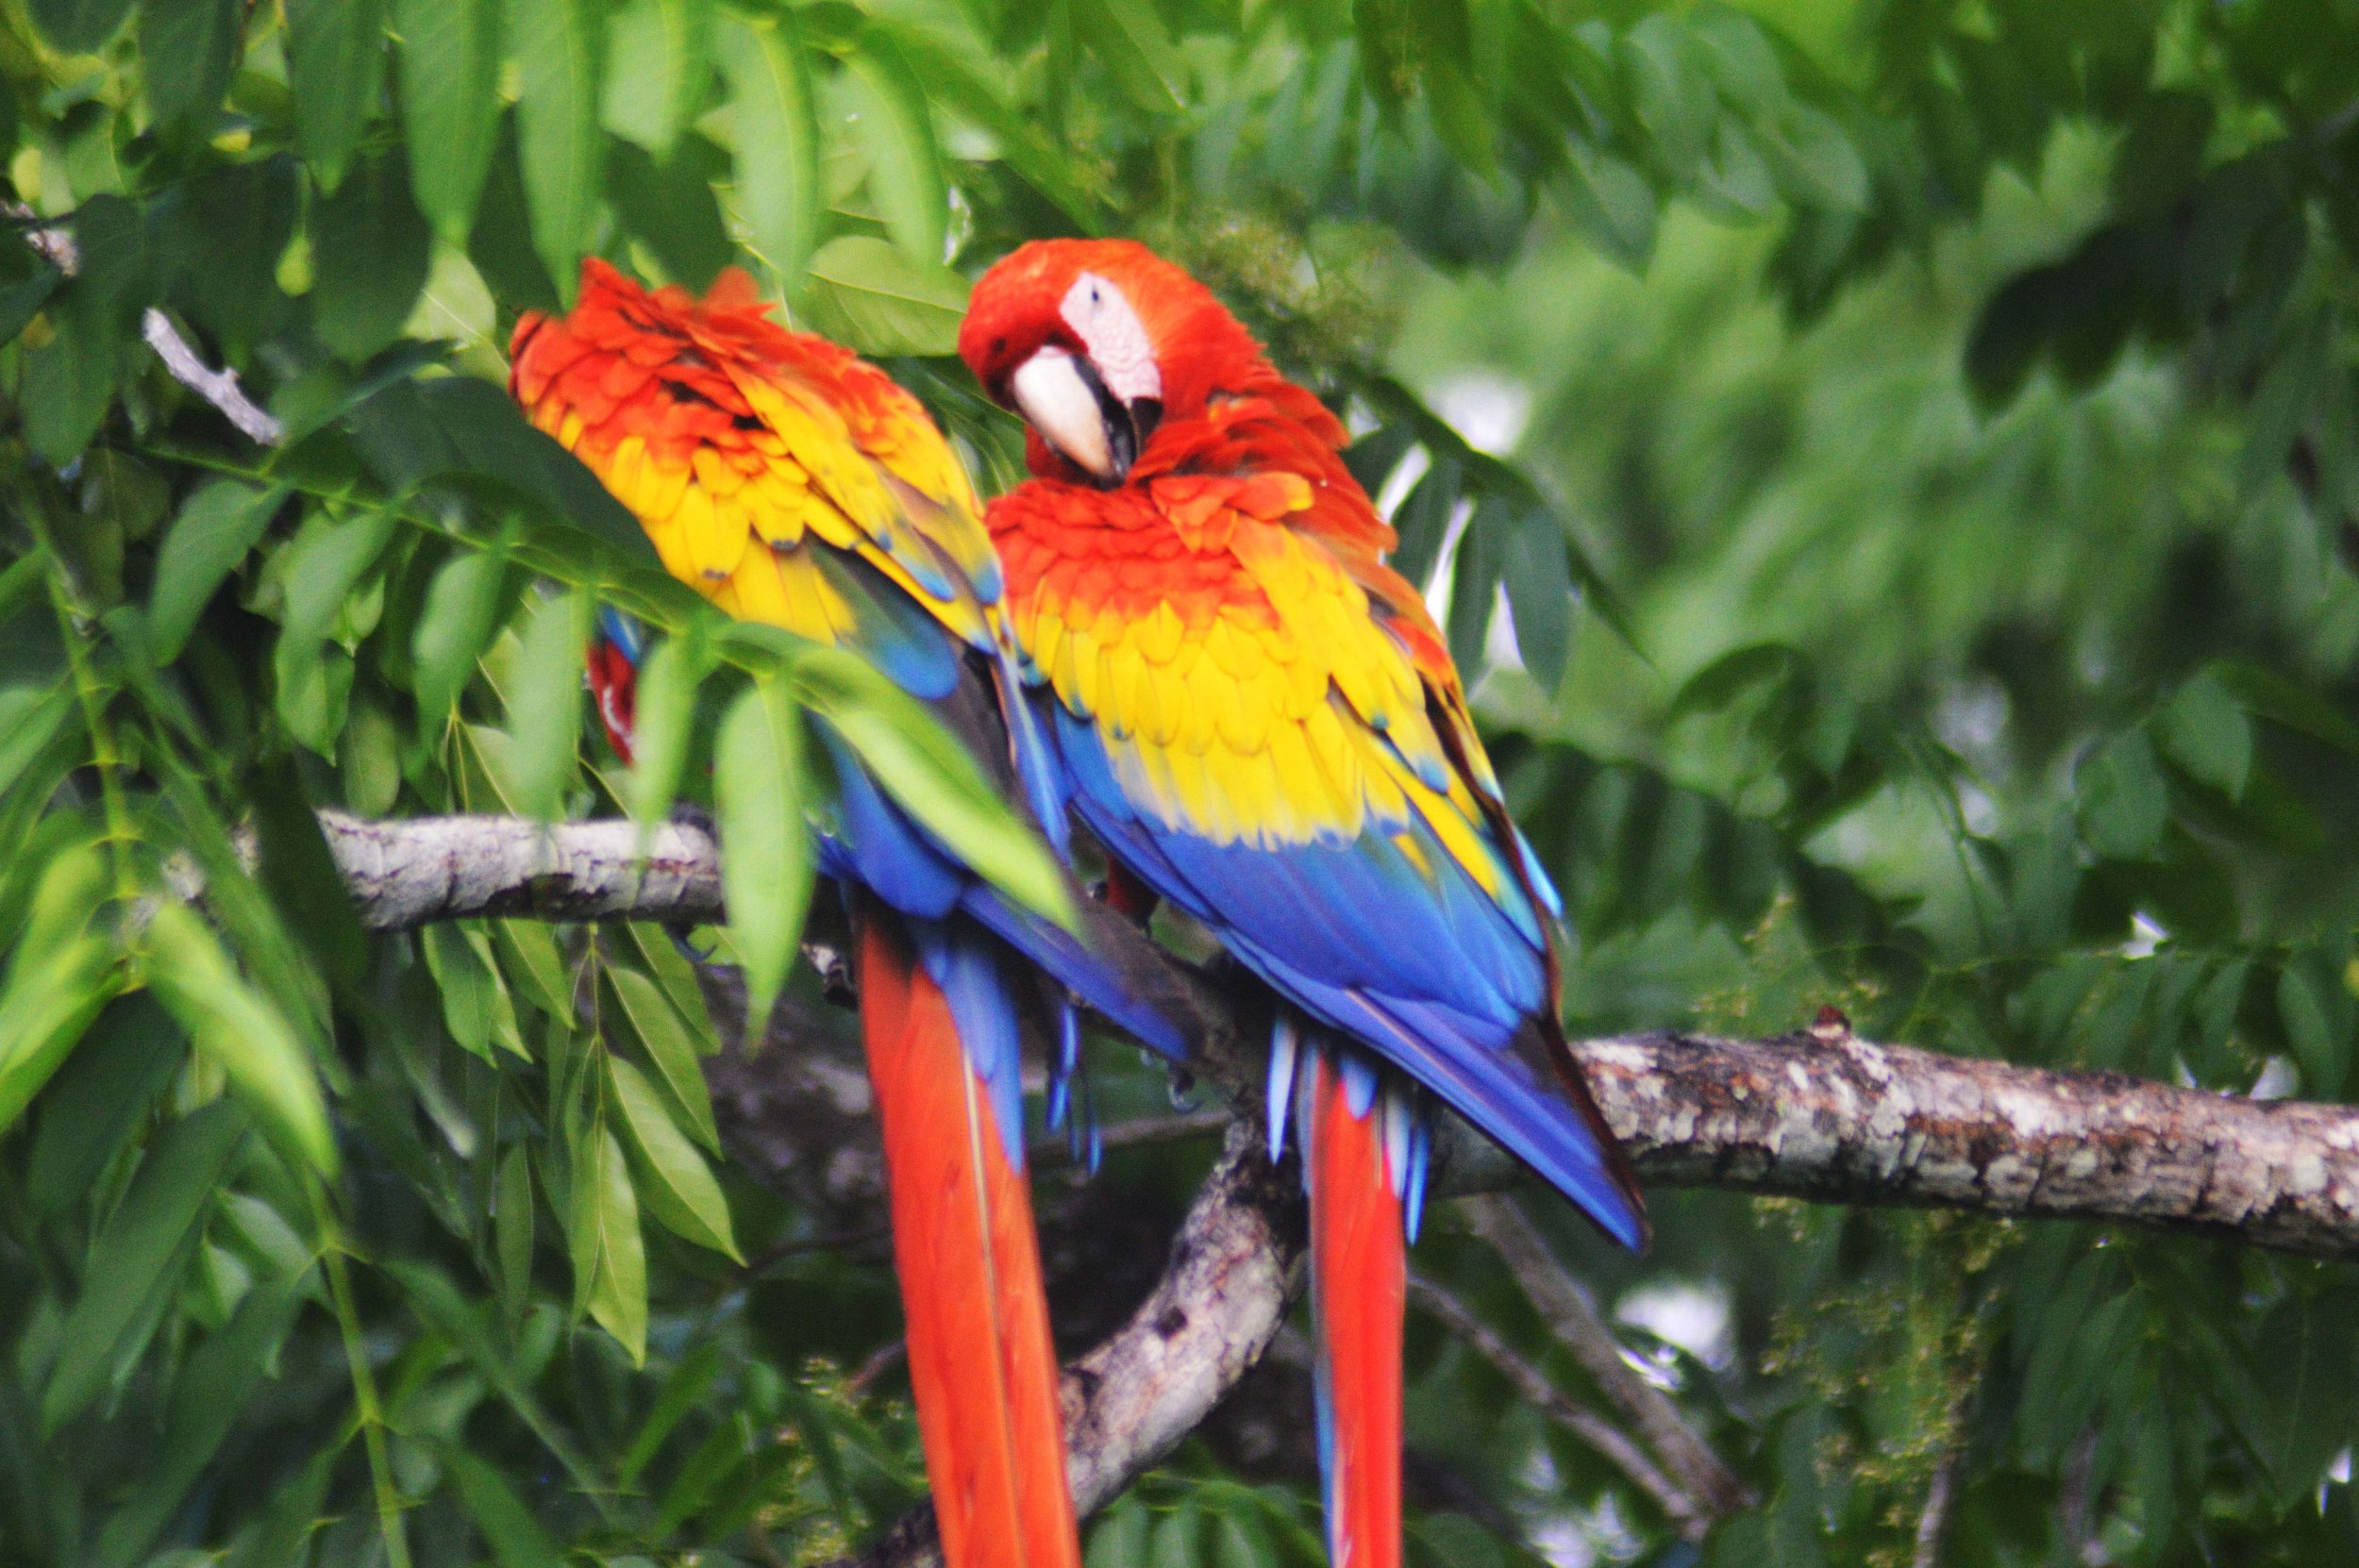 Retouched - 2 Macaws on Branch I.jpg